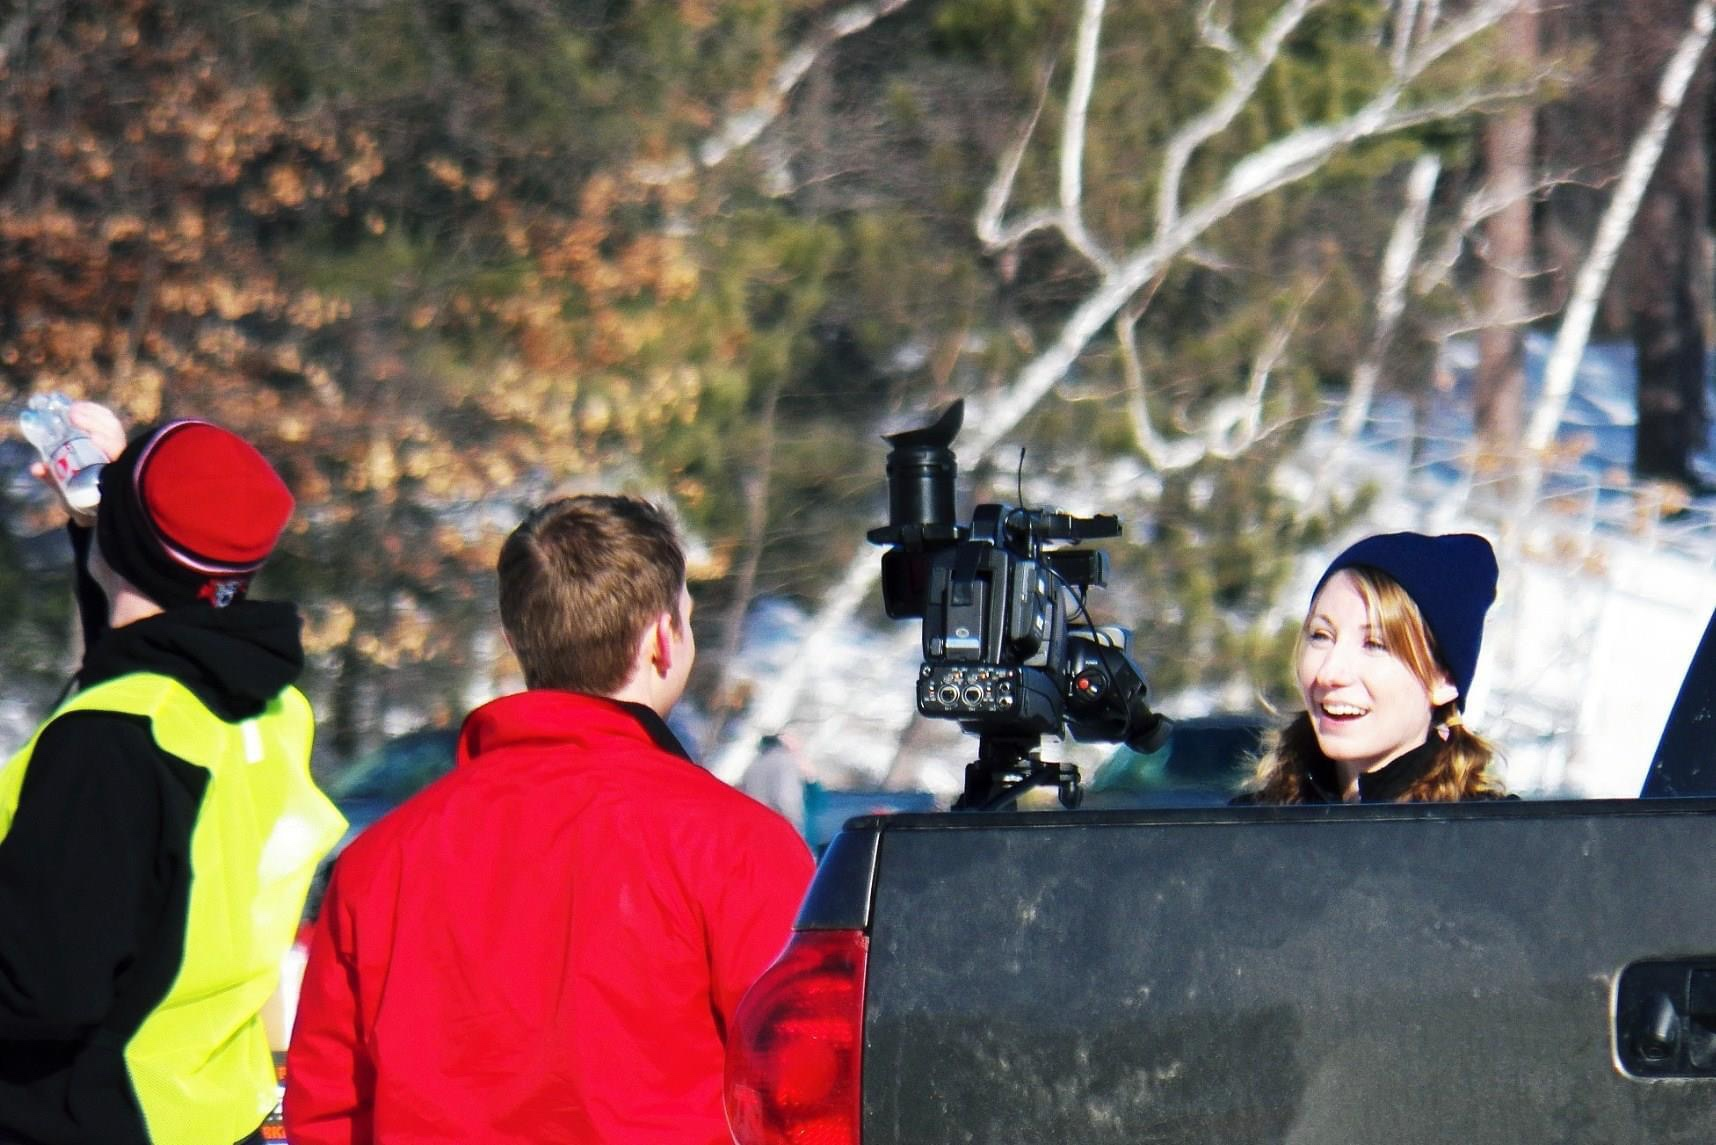 blonde woman in a ski hat being interviewed by a TV crew